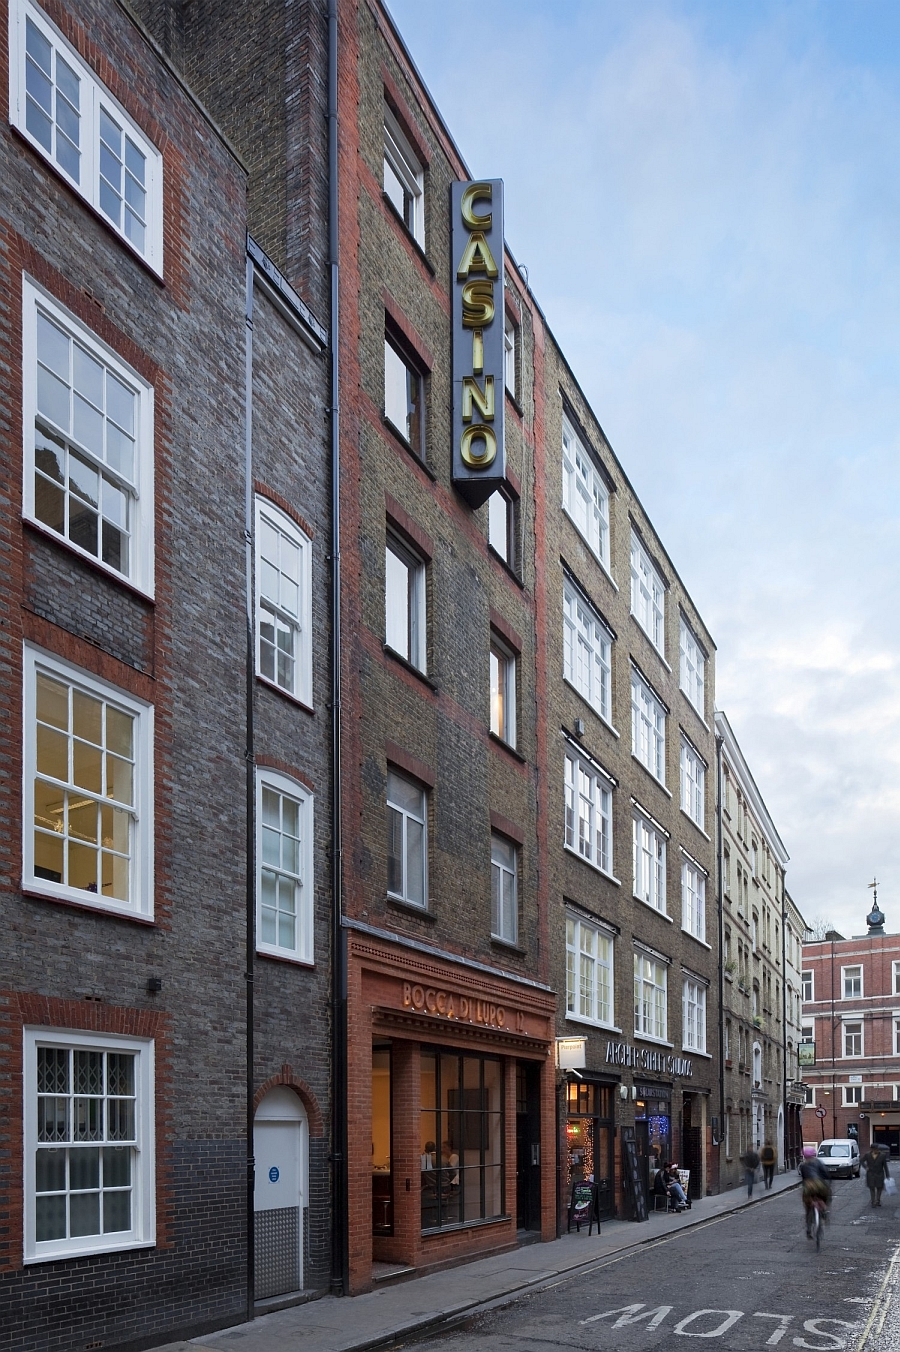 View In Gallery Street Facade Of The Apartment Building On Archer Street,  Soho, London